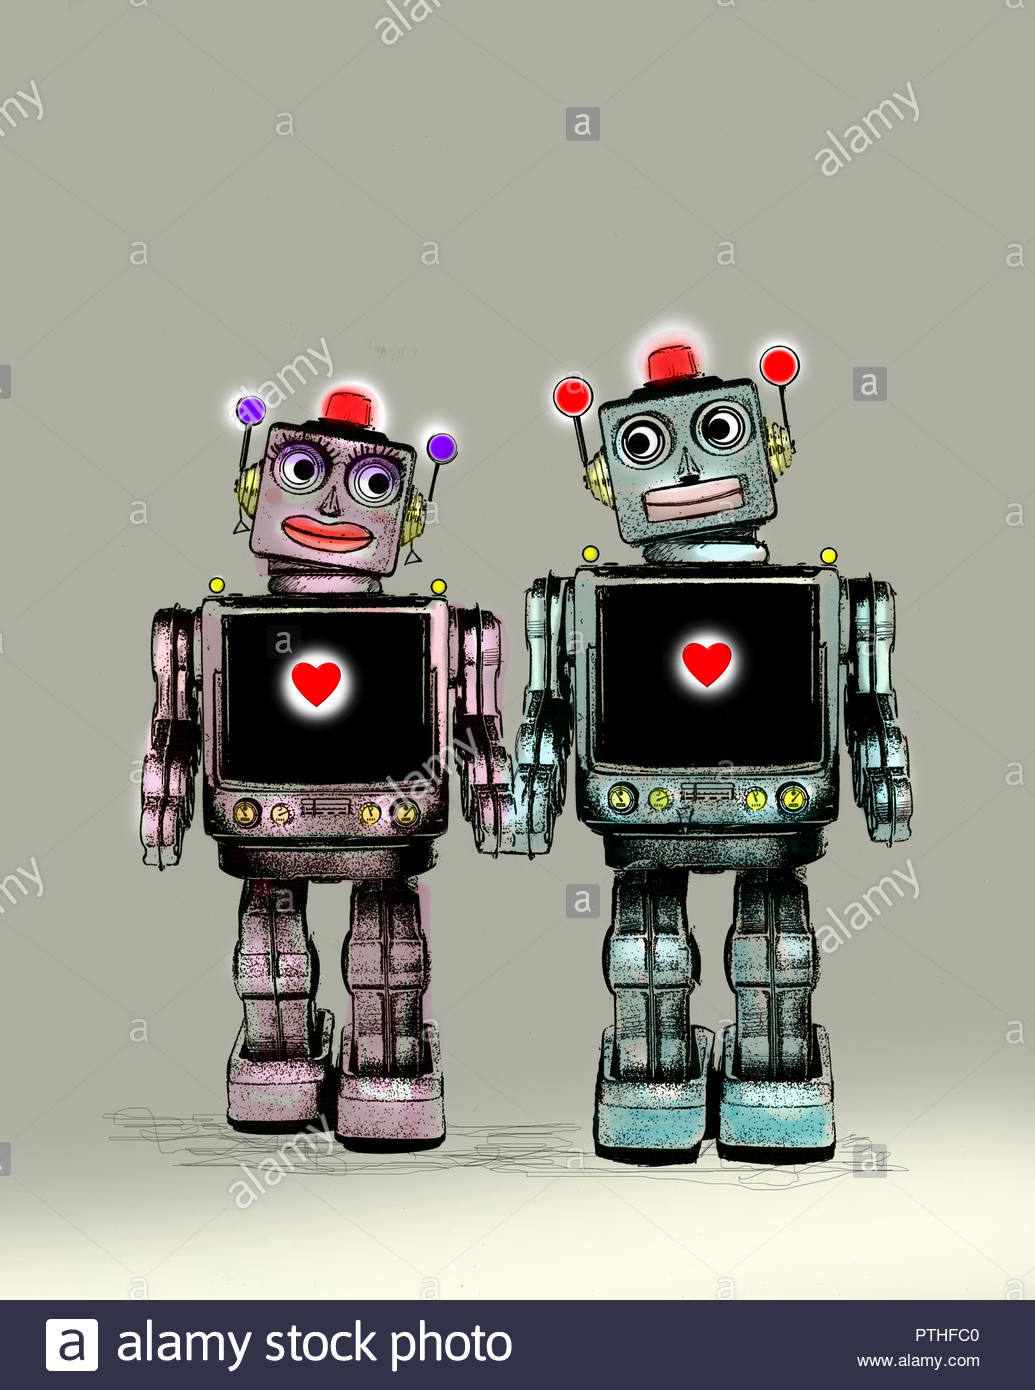 Two robots falling in love - Stock Image